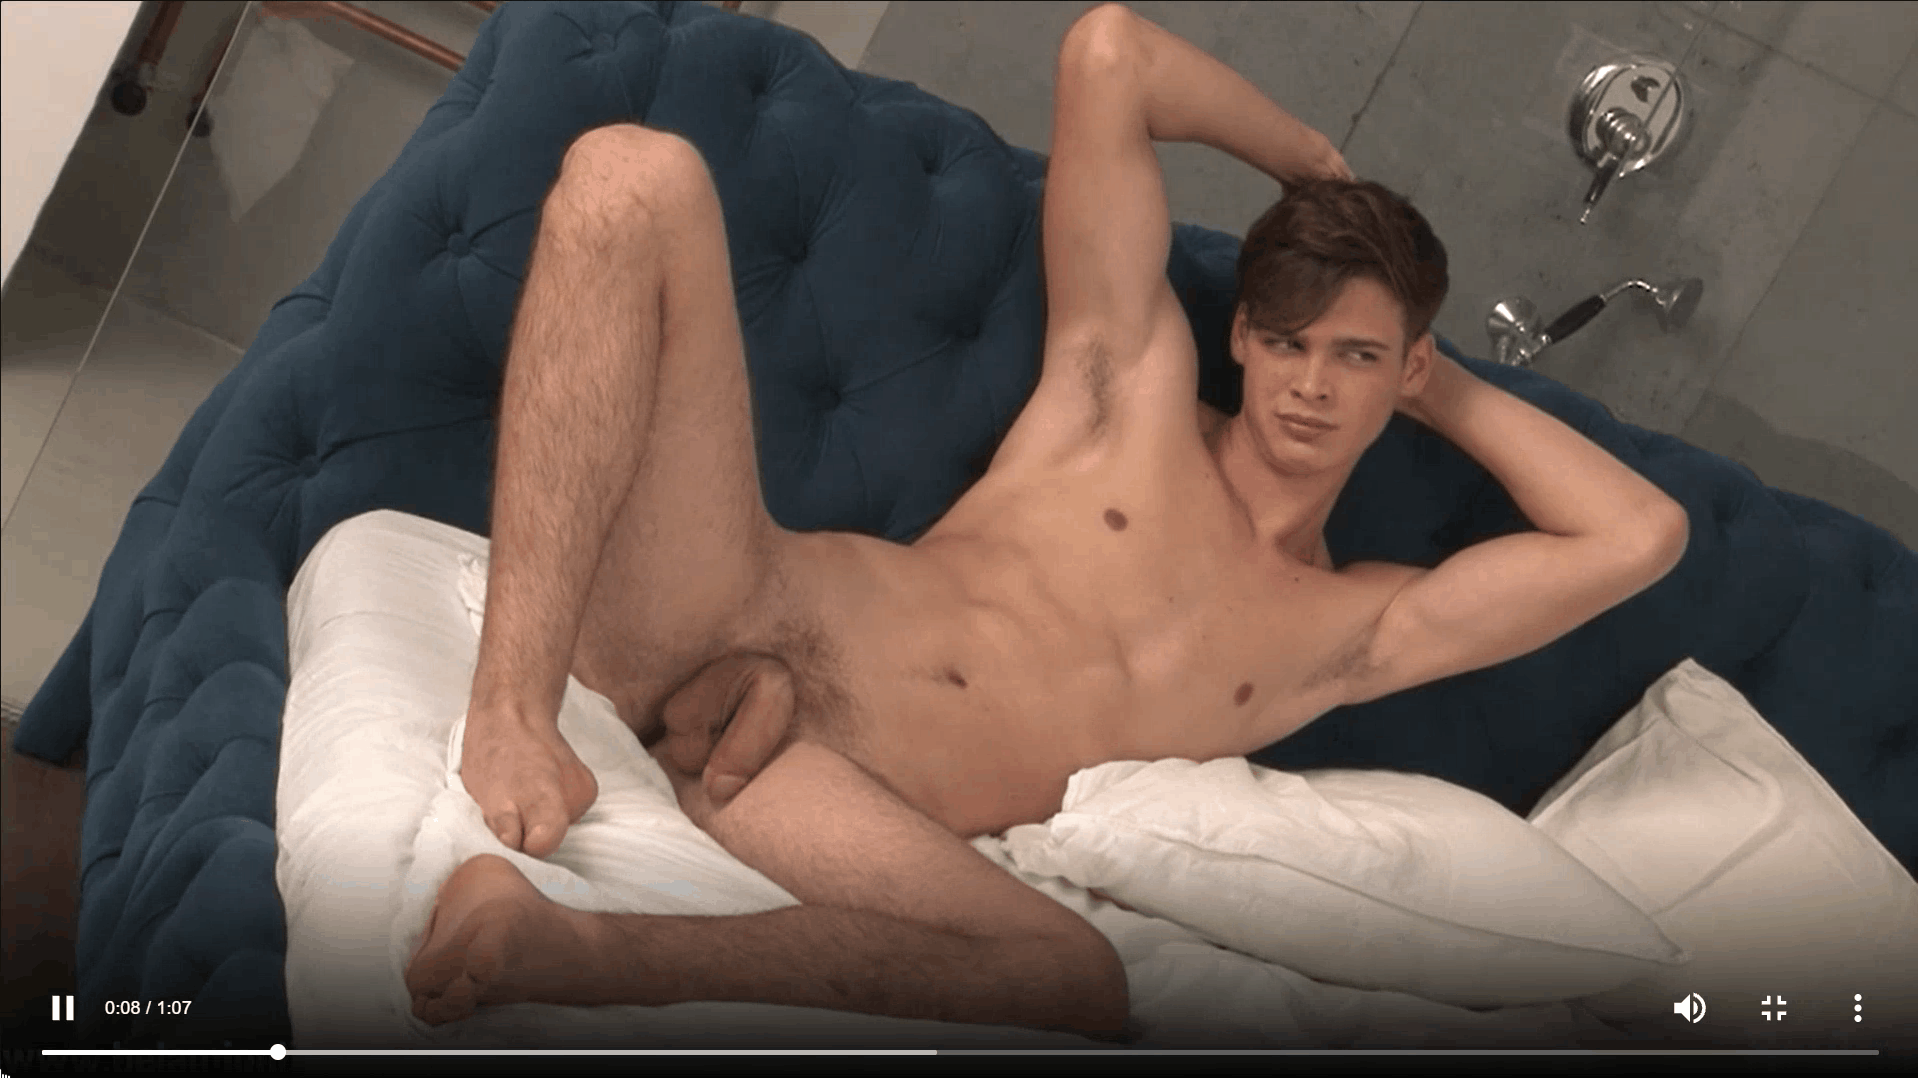 Sexy dark haired young twink Pascal Mauri steps out of the shower stroking big thick uncut dick 10 gay porn pics - Sexy dark haired young twink Pascal Mauri steps out of the shower stroking his big thick uncut dick